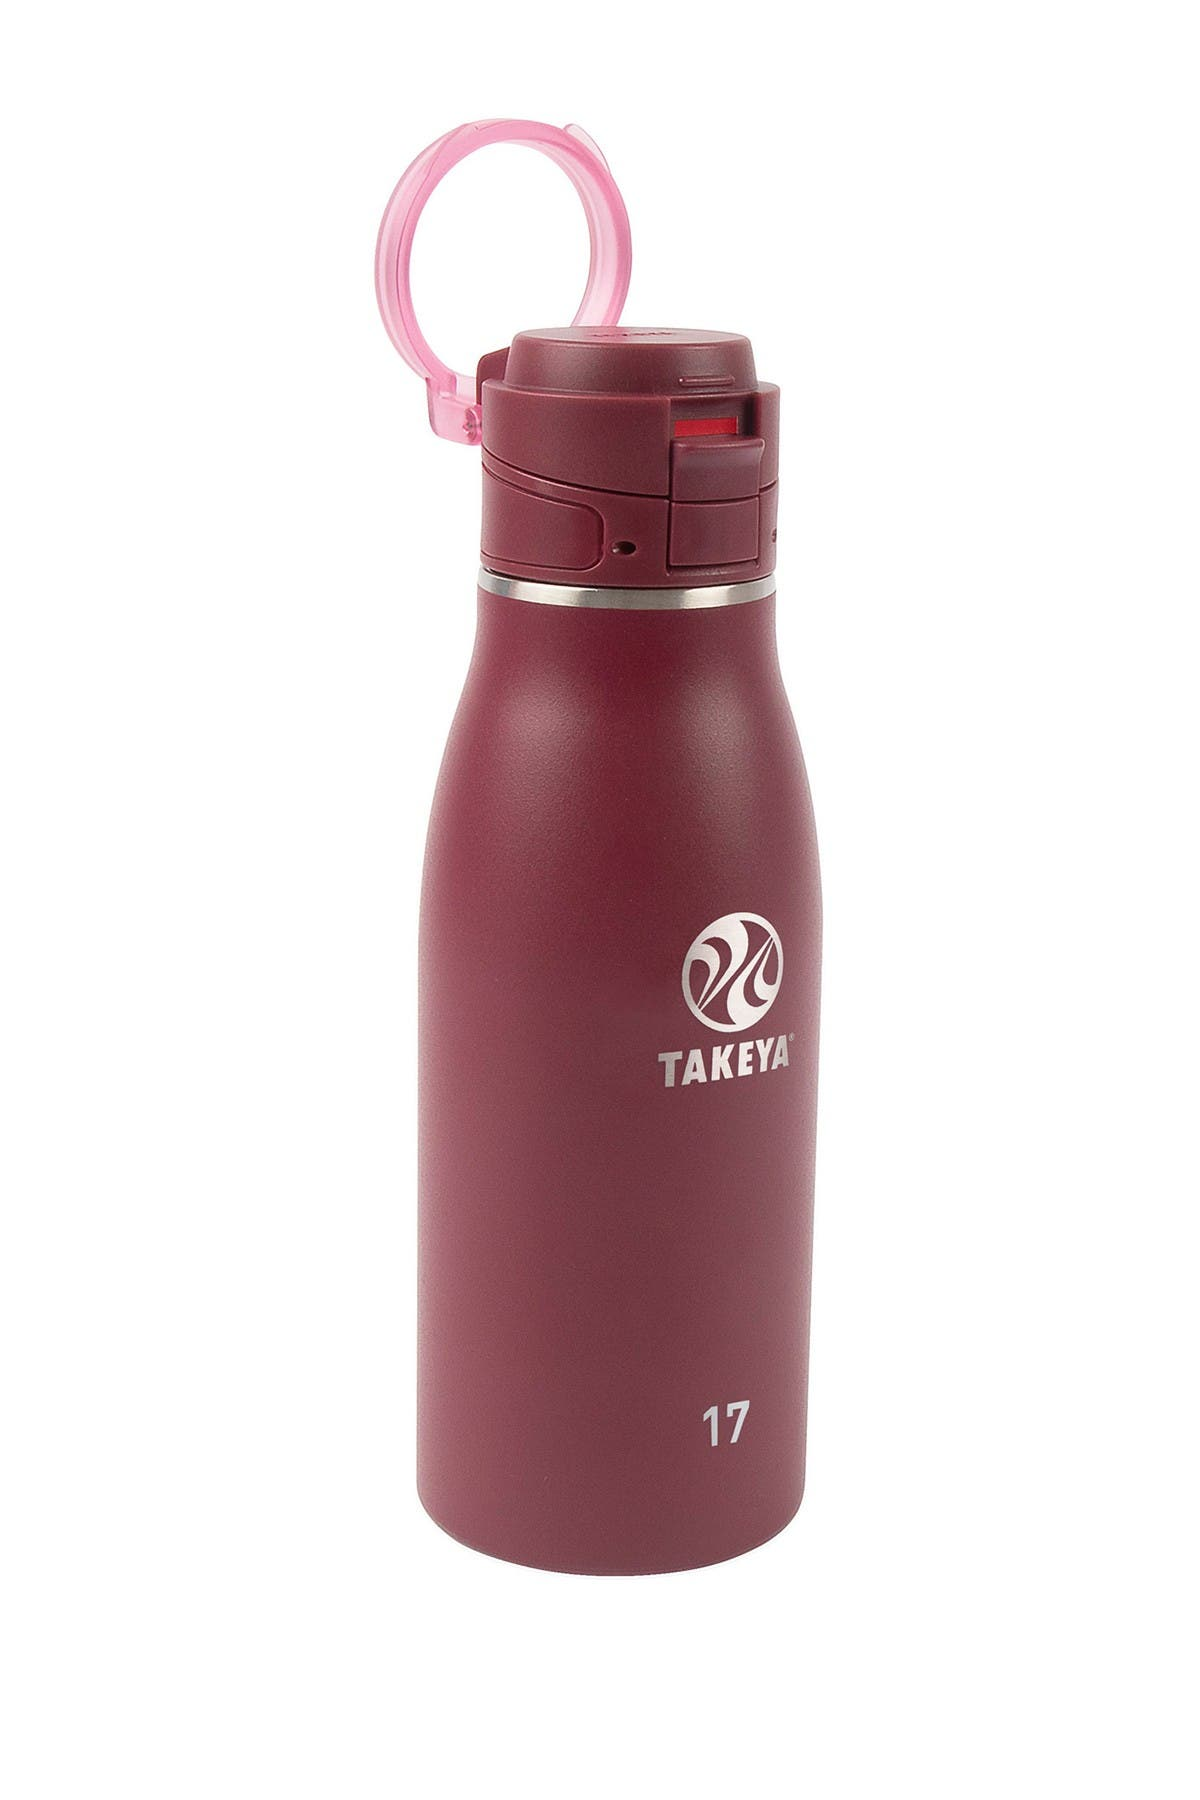 Image of Takeya Traveler 17oz FlipLock Bottle - Merlot